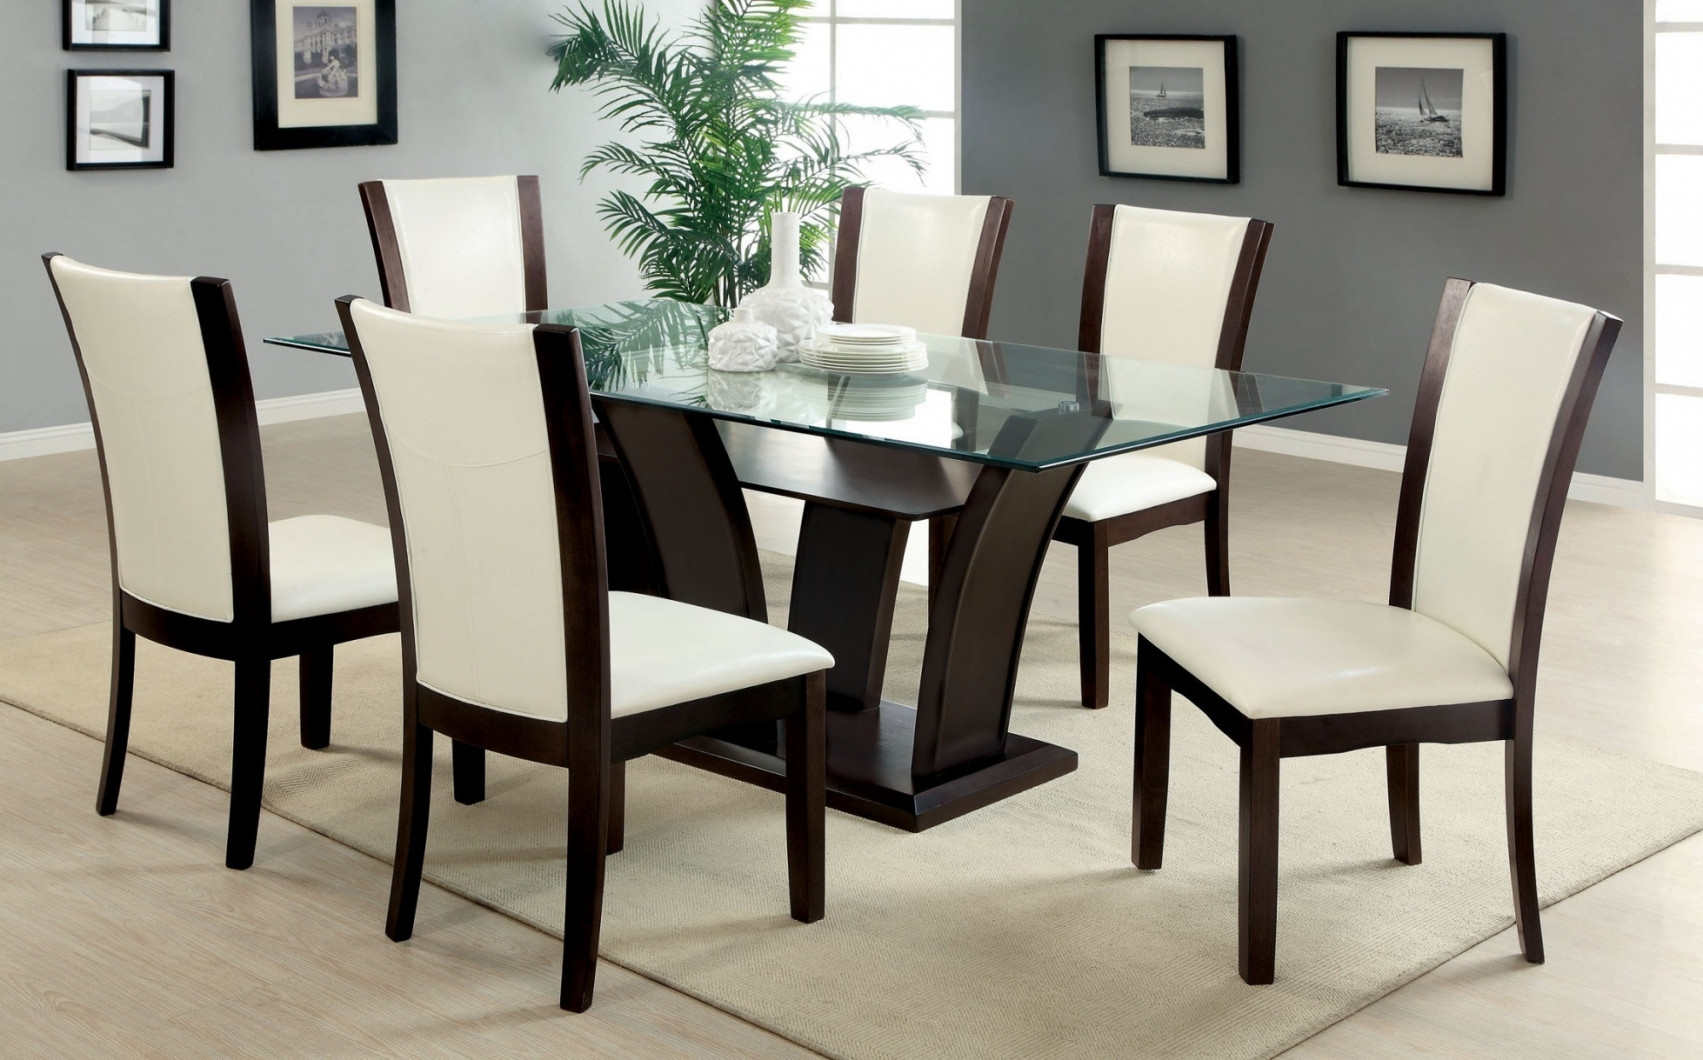 Dining Table Set 9 Seater Dining Room Ideas Home Decorating – layjao